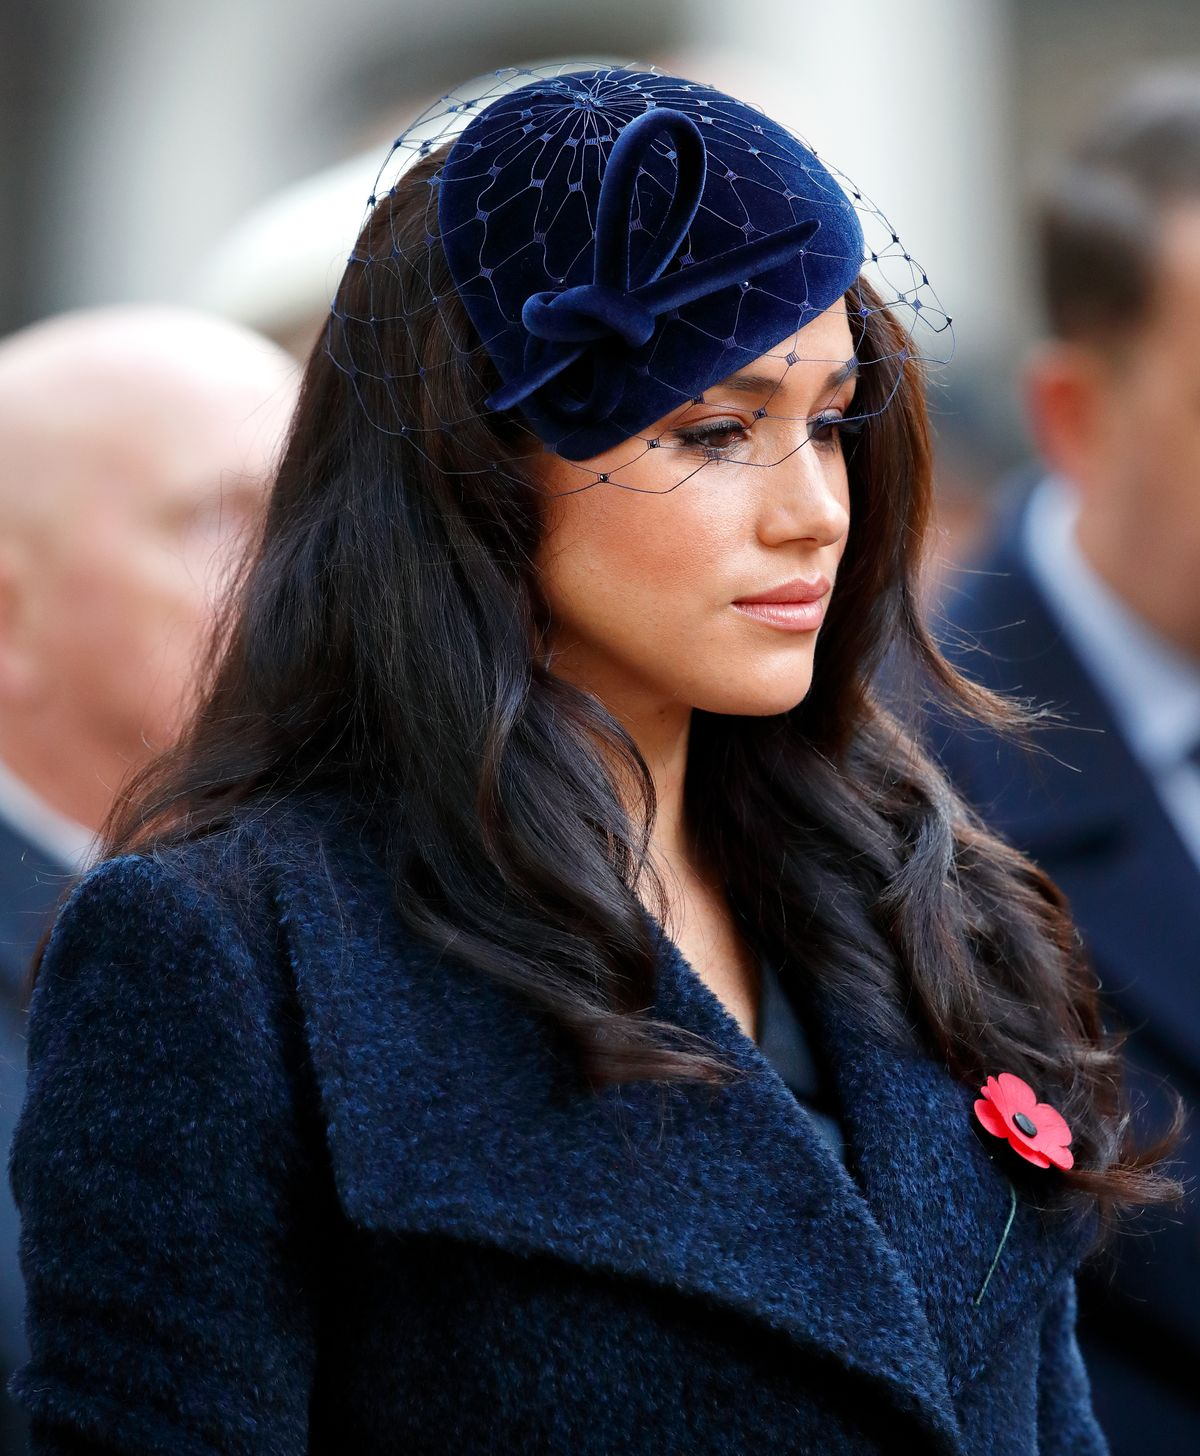 Duchess Meghan atthe 91st Field of Remembrance at Westminster Abbey on November 7, 2019, in London, England   Photo:Max Mumby/Indigo/Getty Images